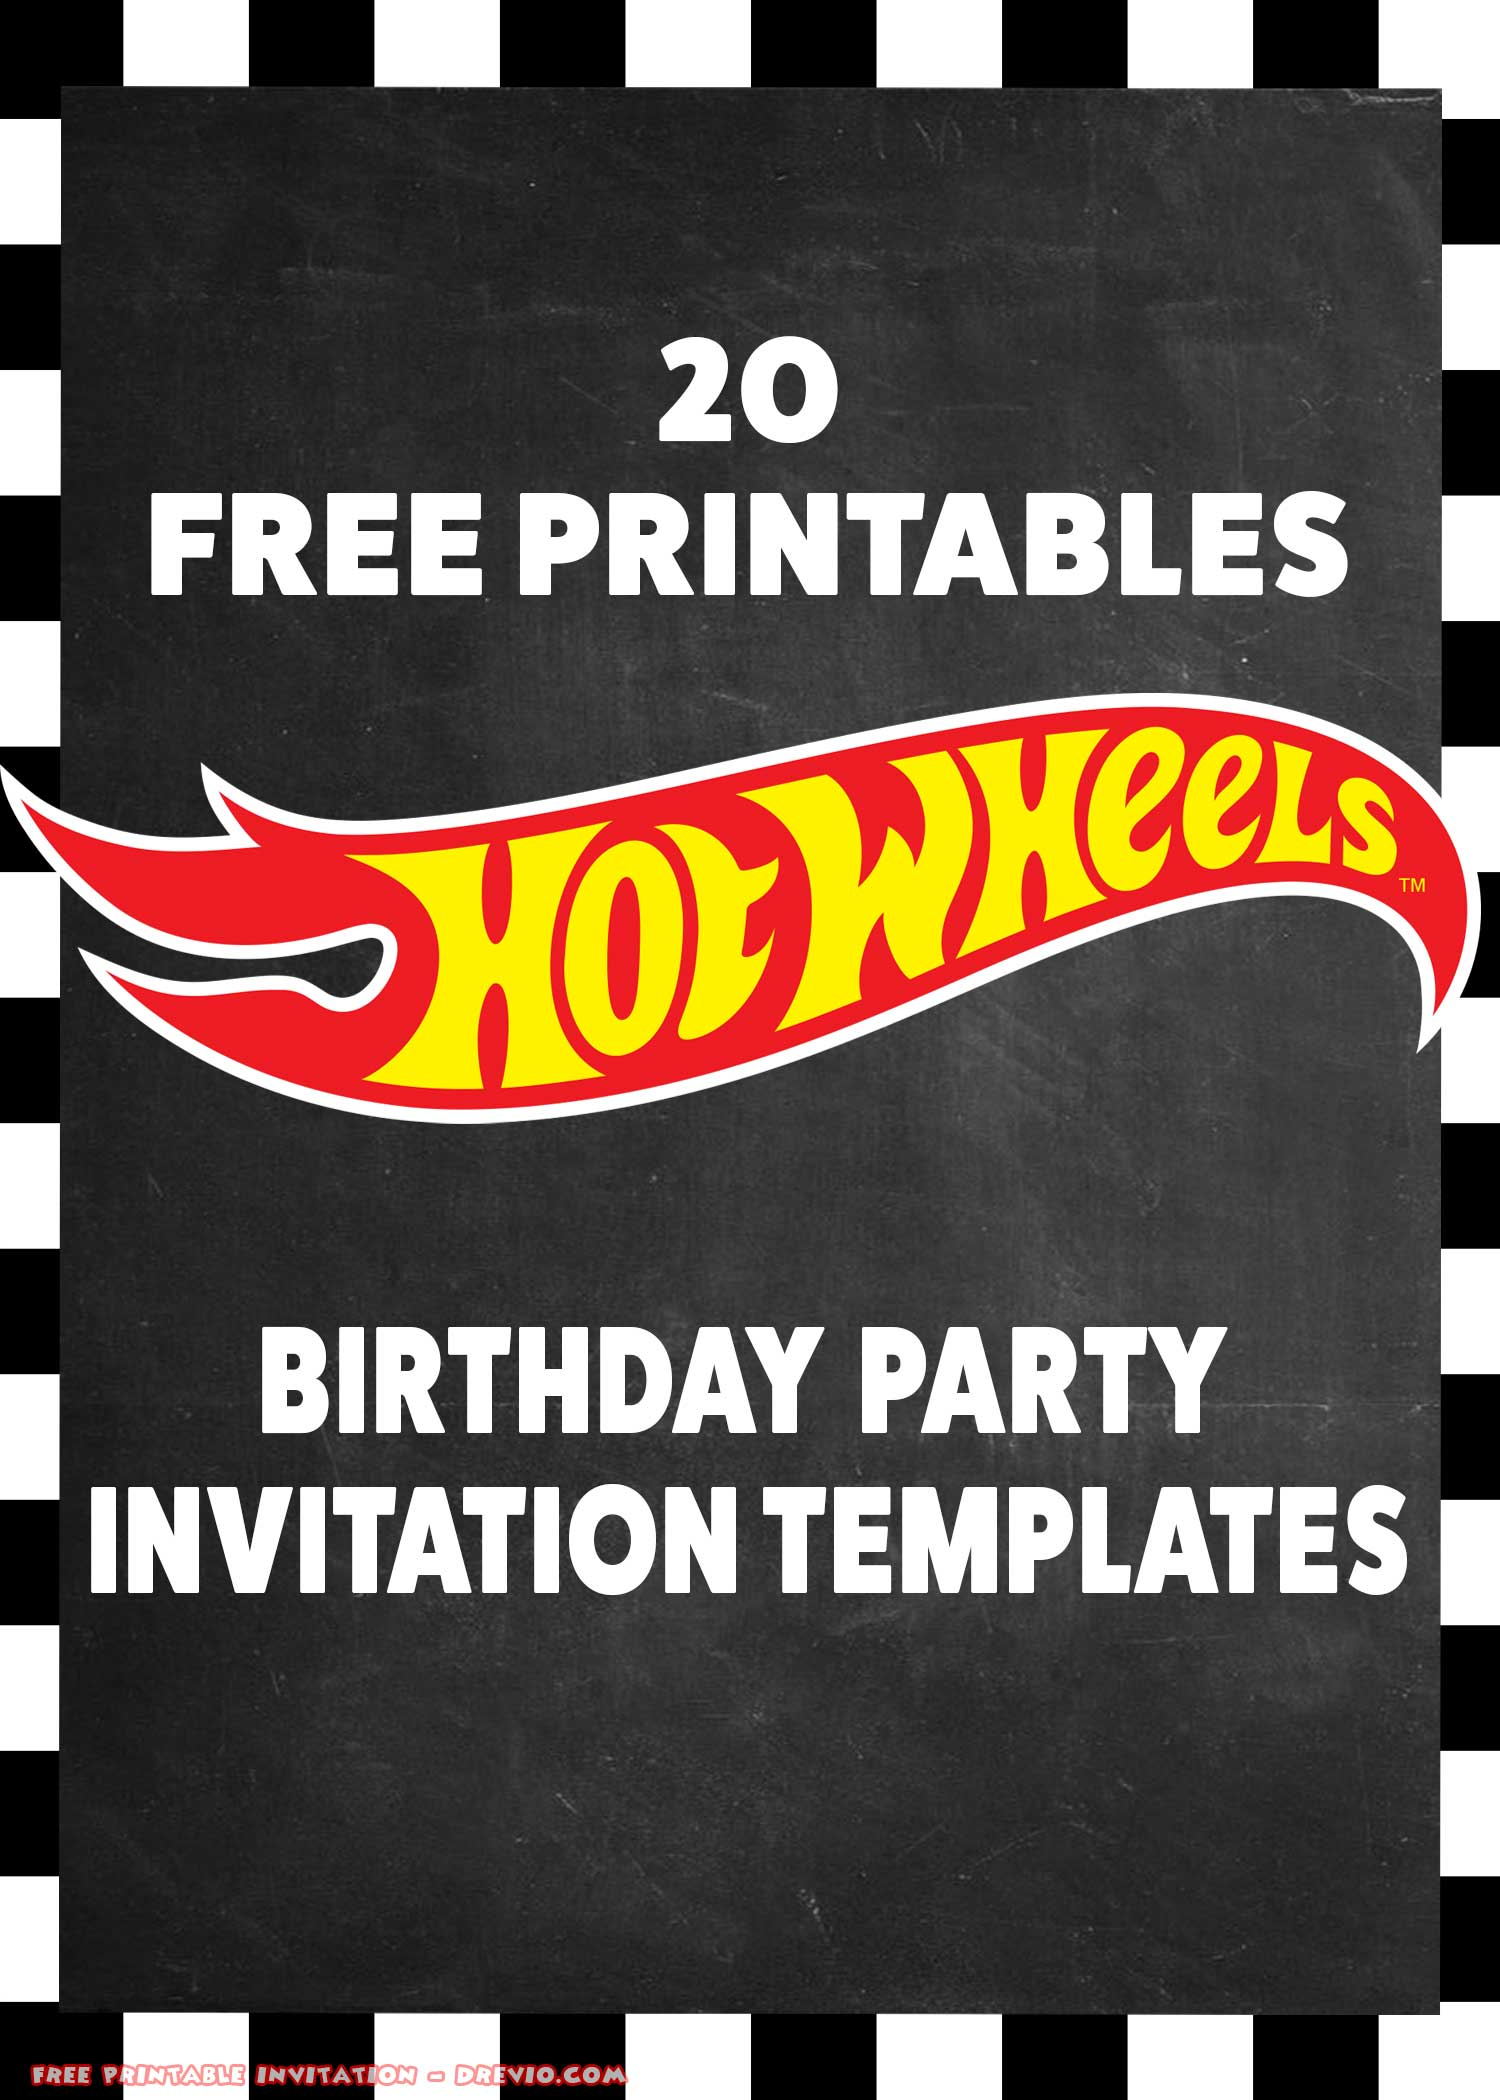 20 Hot Wheels Party Invite Free Printables Download Hundreds Free Printable Birthday Invitation Templates